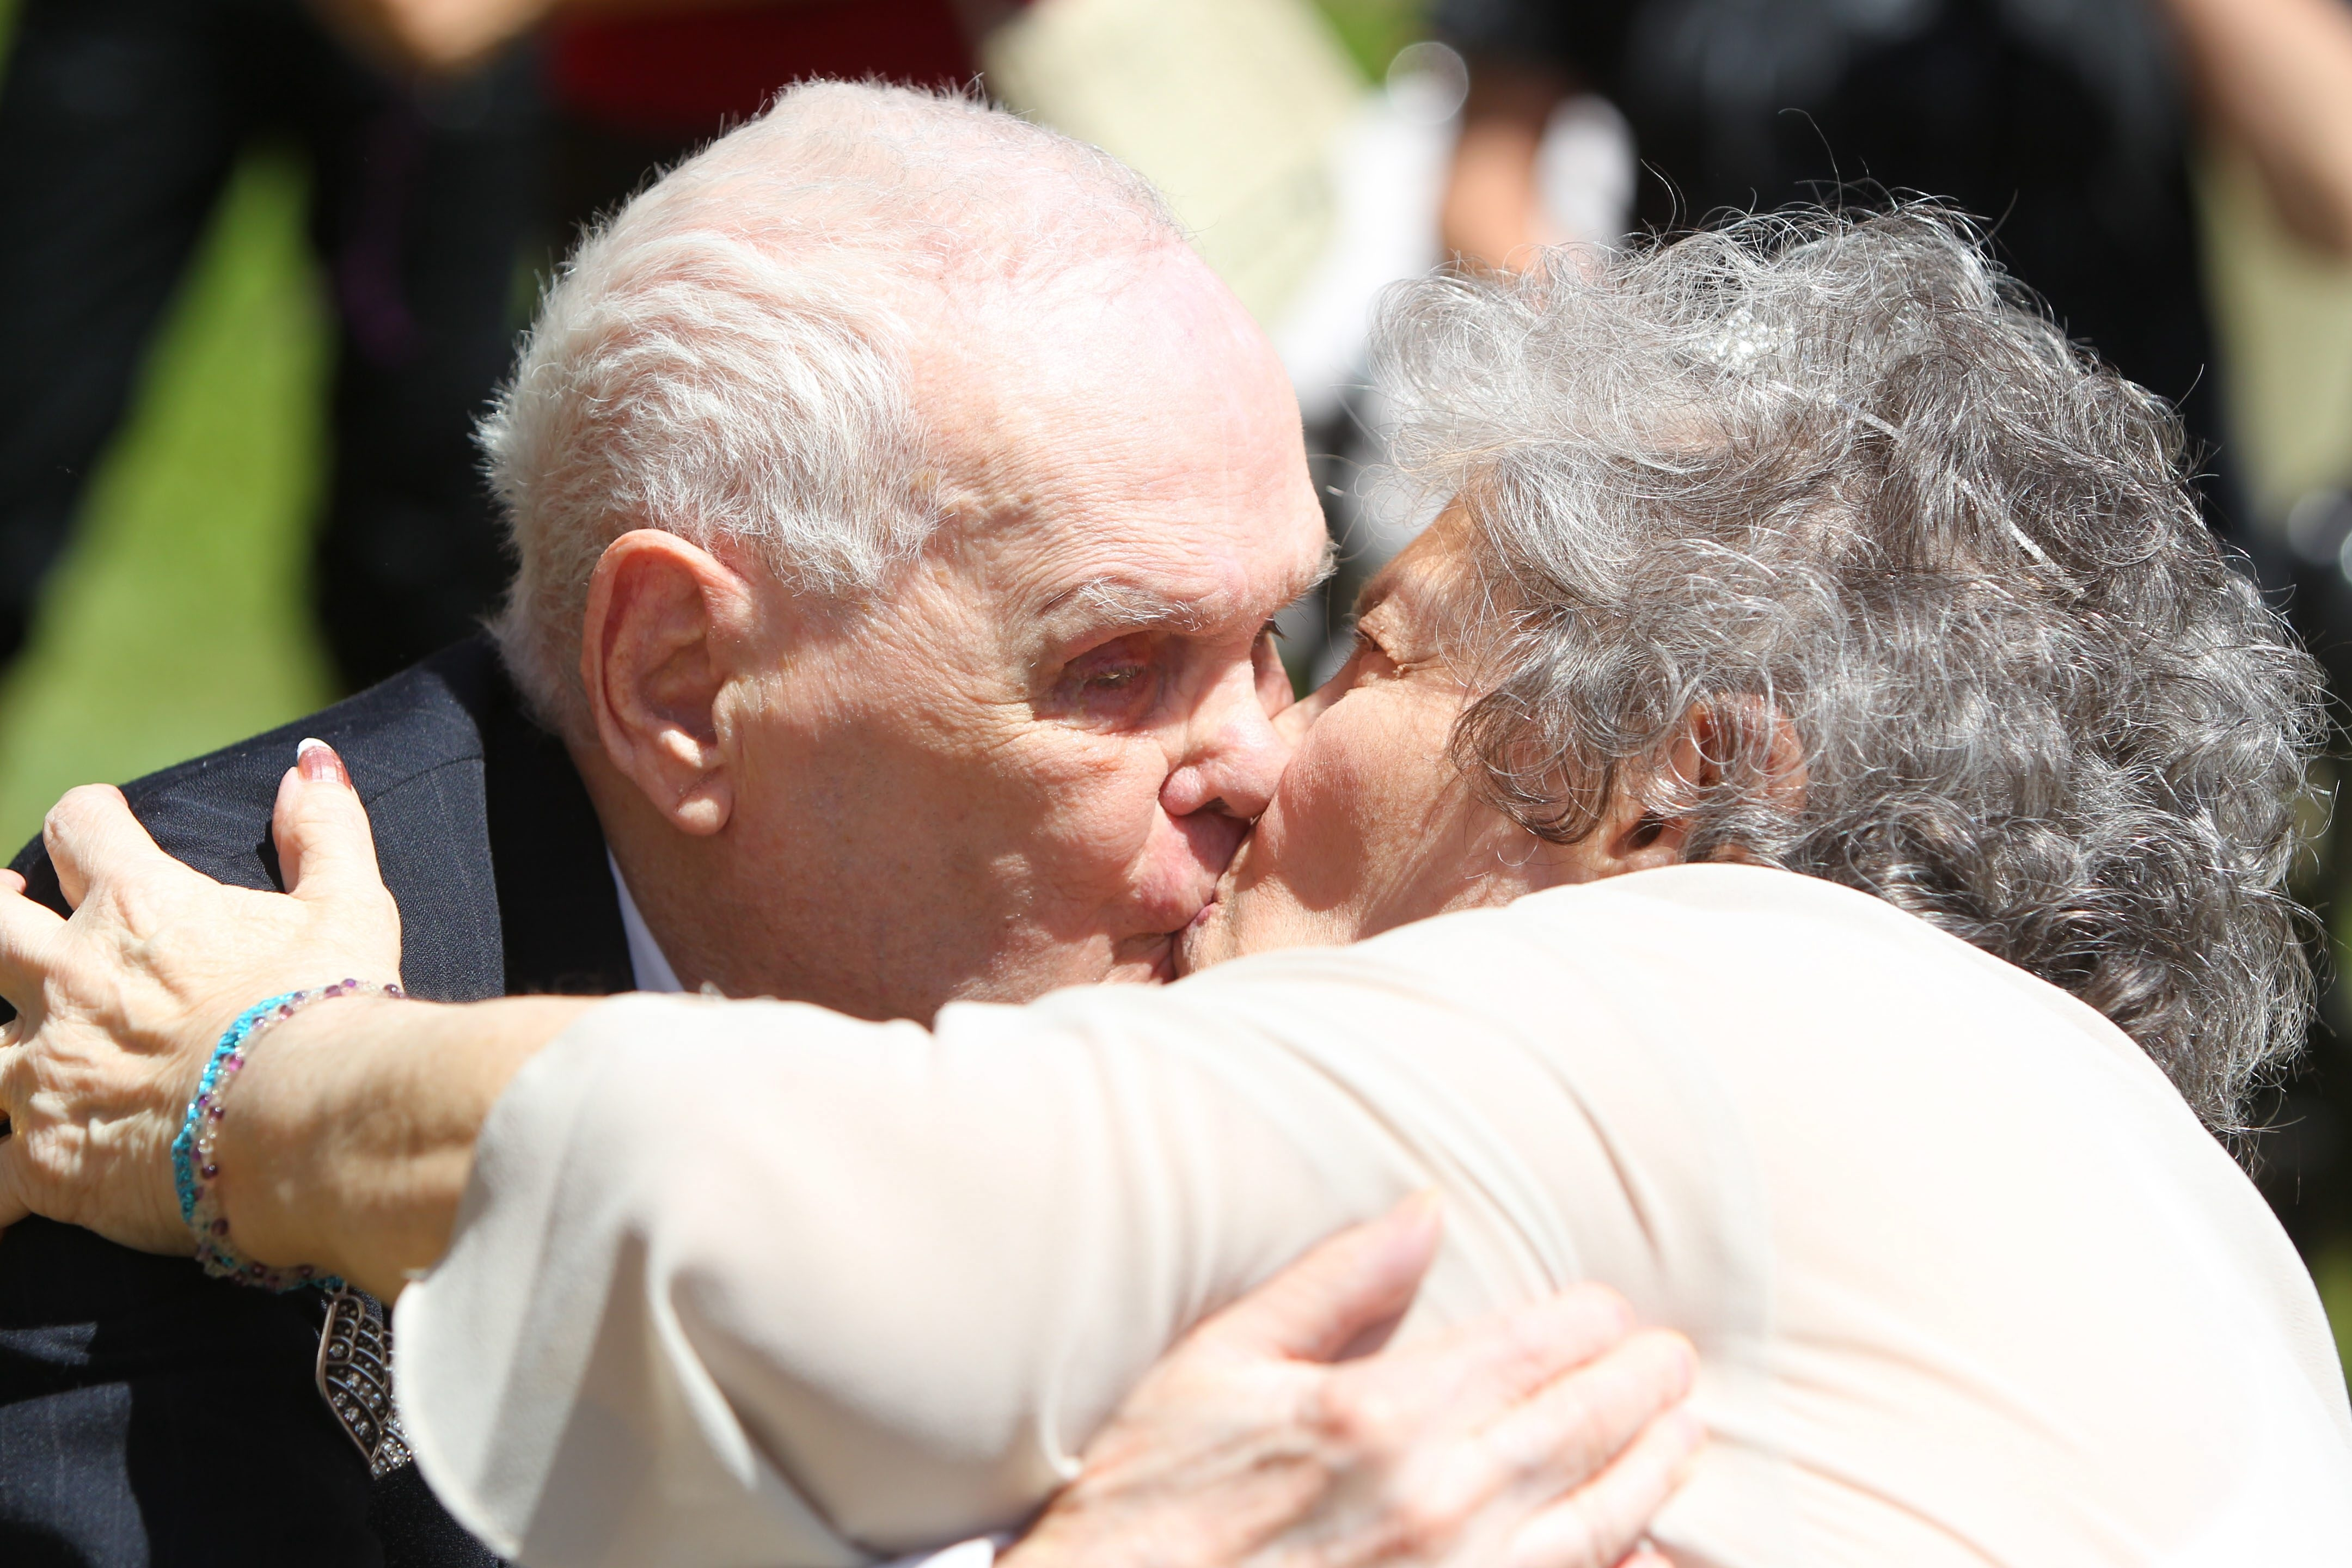 Robert Gagnon kisses Charlotte Abounader during their wedding Thursday. See a photo gallery at BuffaloNews.com.